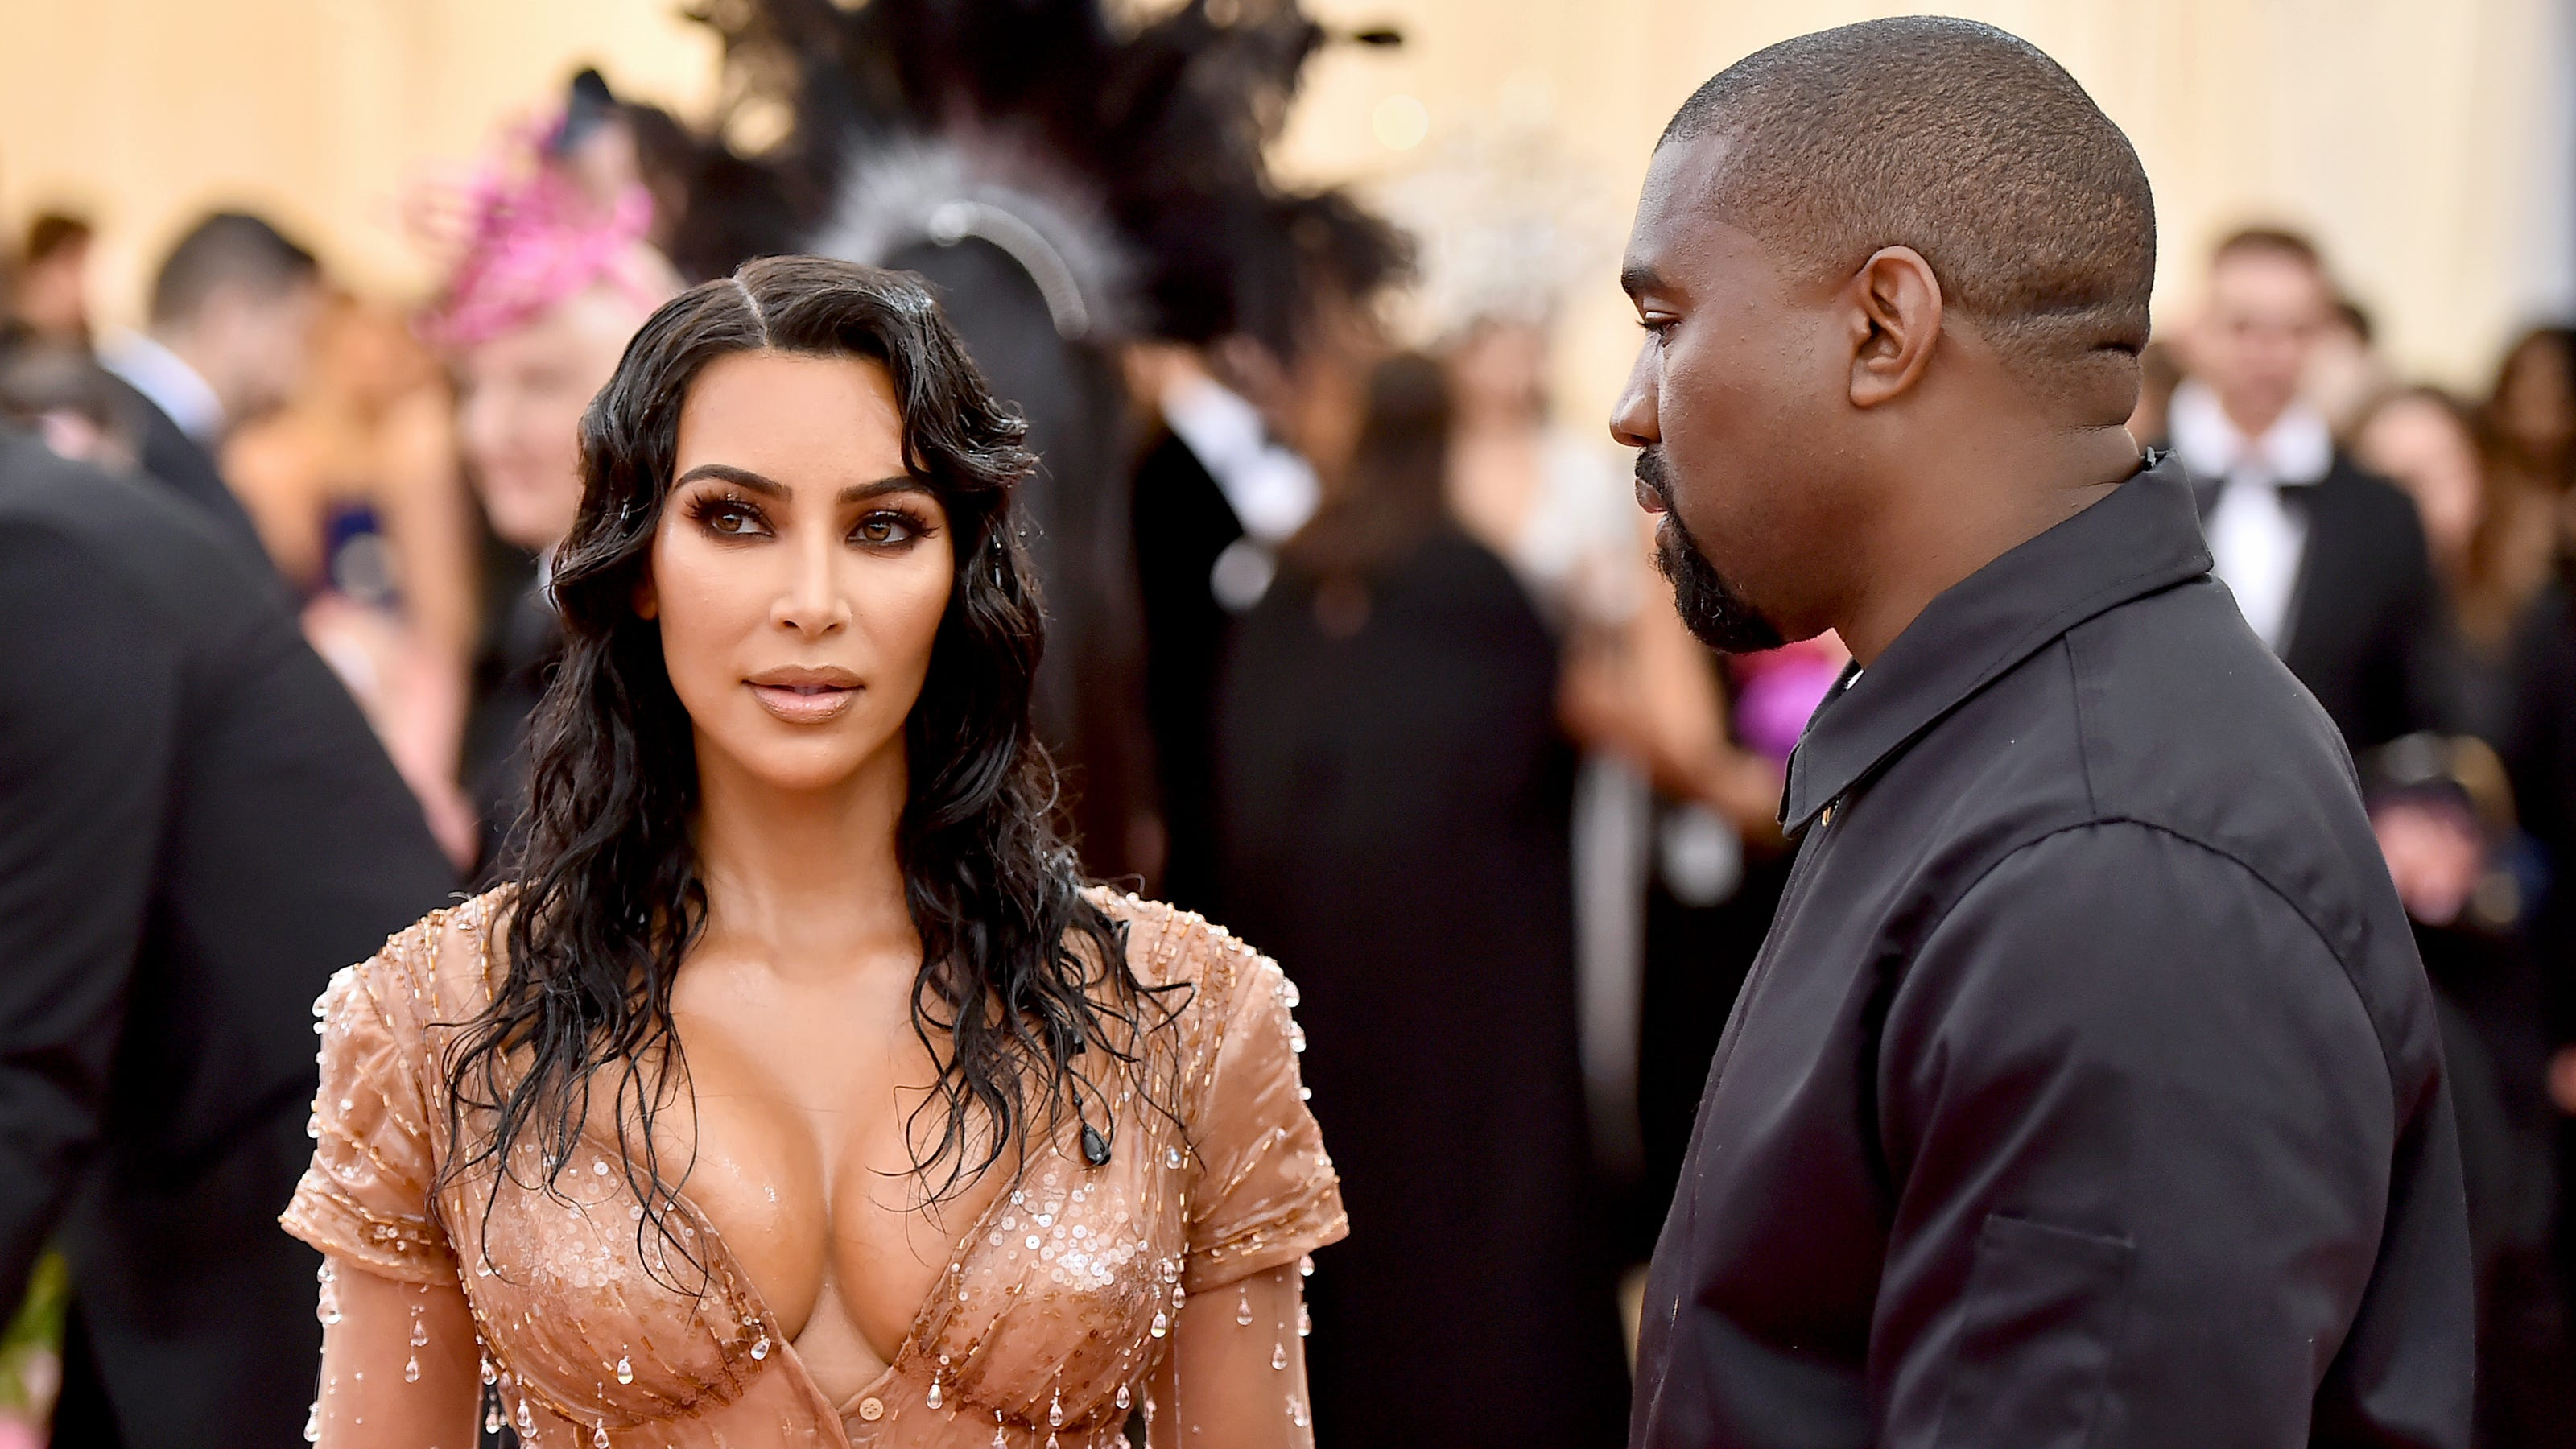 Kim Kardashian sobs over Kanye West marriage woes on 'Keeping Up'